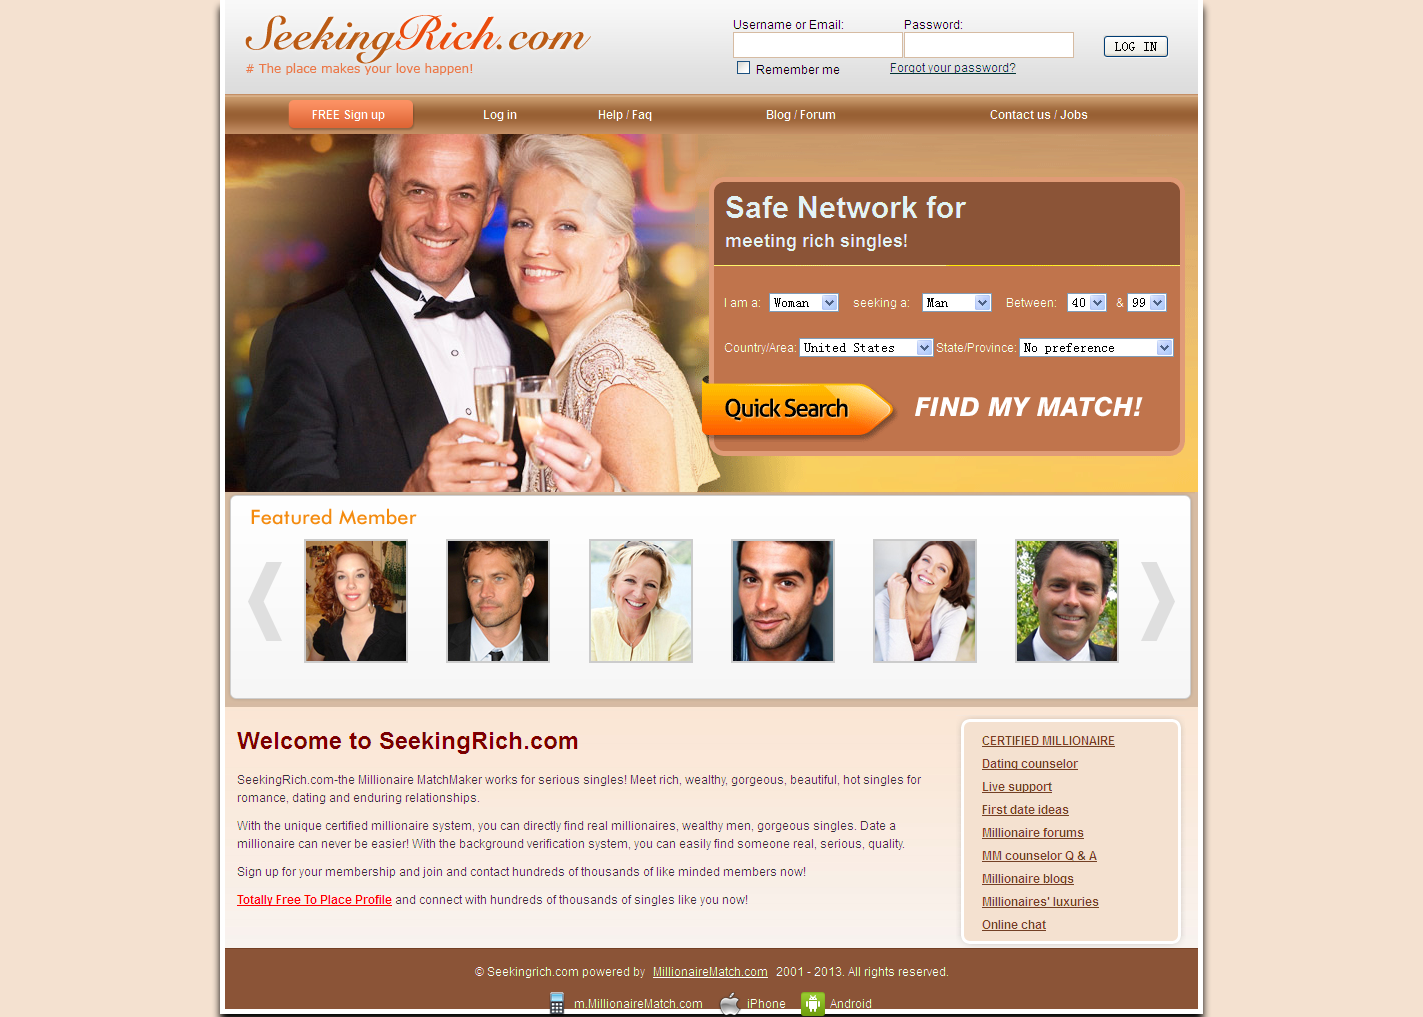 autryville singles dating site Autryville's best 100% free latin dating site meet thousands of single latinos in autryville with mingle2's free latin personal ads and chat rooms our network of latin men and women in autryville is the perfect place to make latin friends or find a latino boyfriend or girlfriend in autryville.